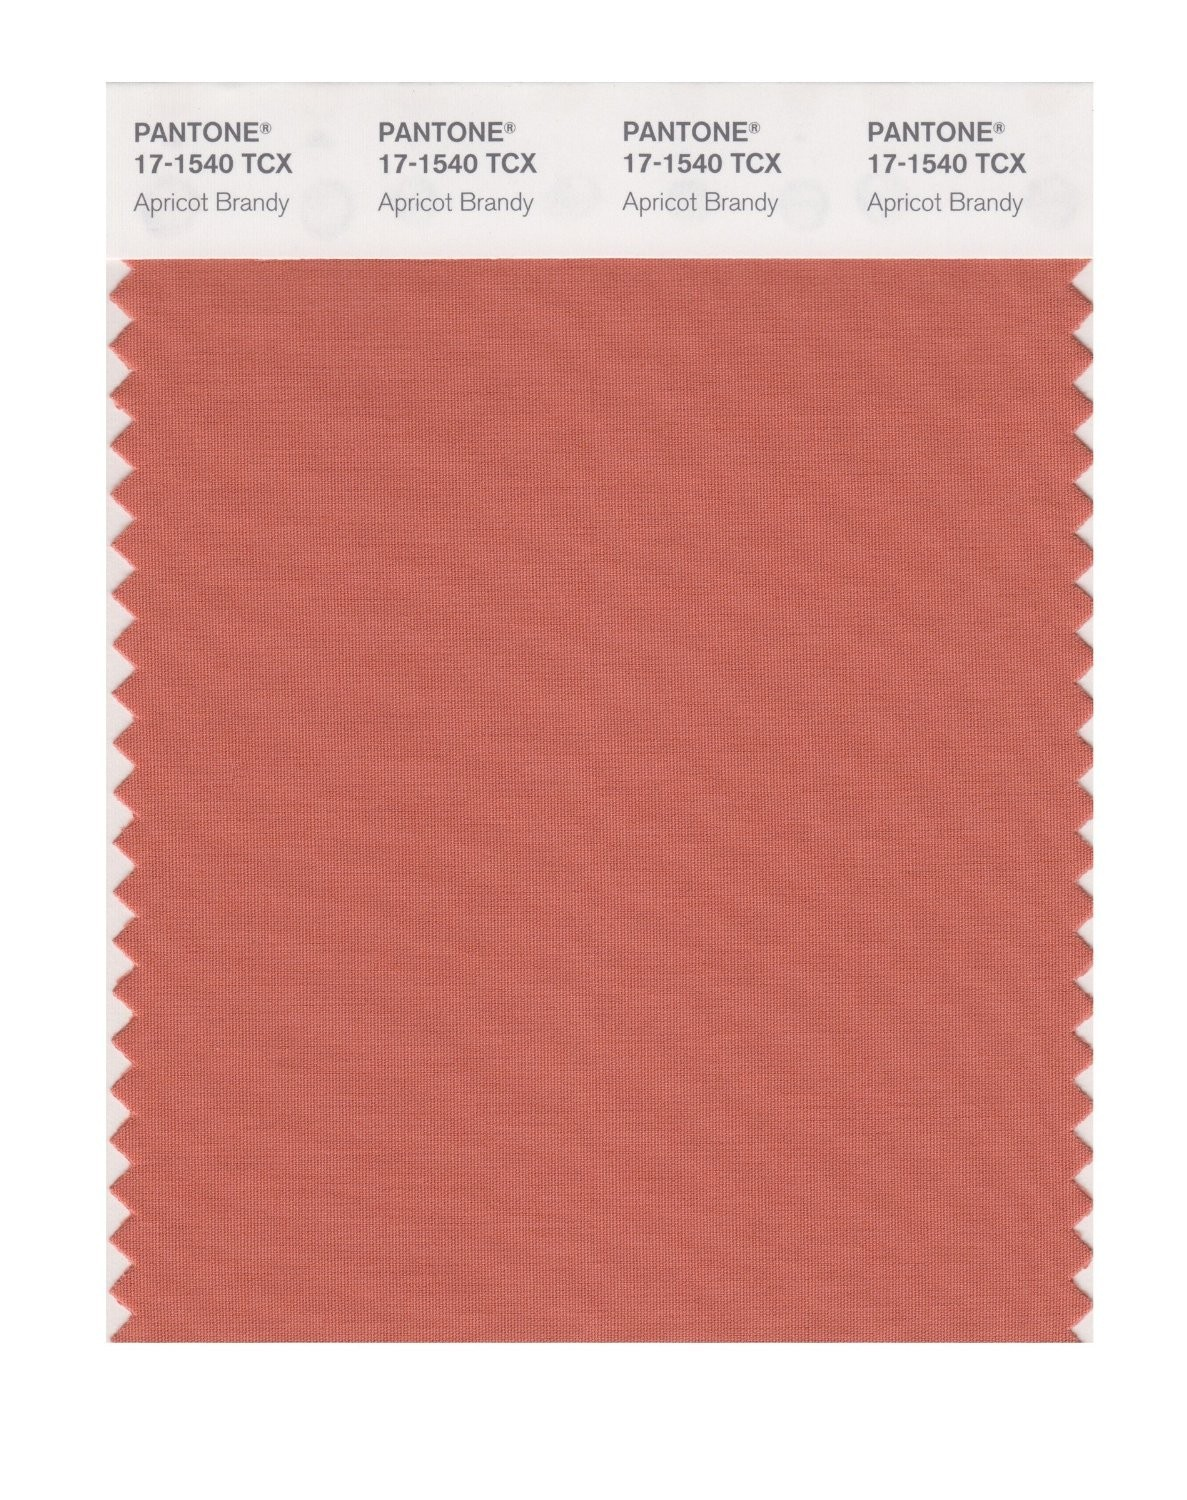 Pantone 17-1540 TCX Swatch Card Apricot Brandy